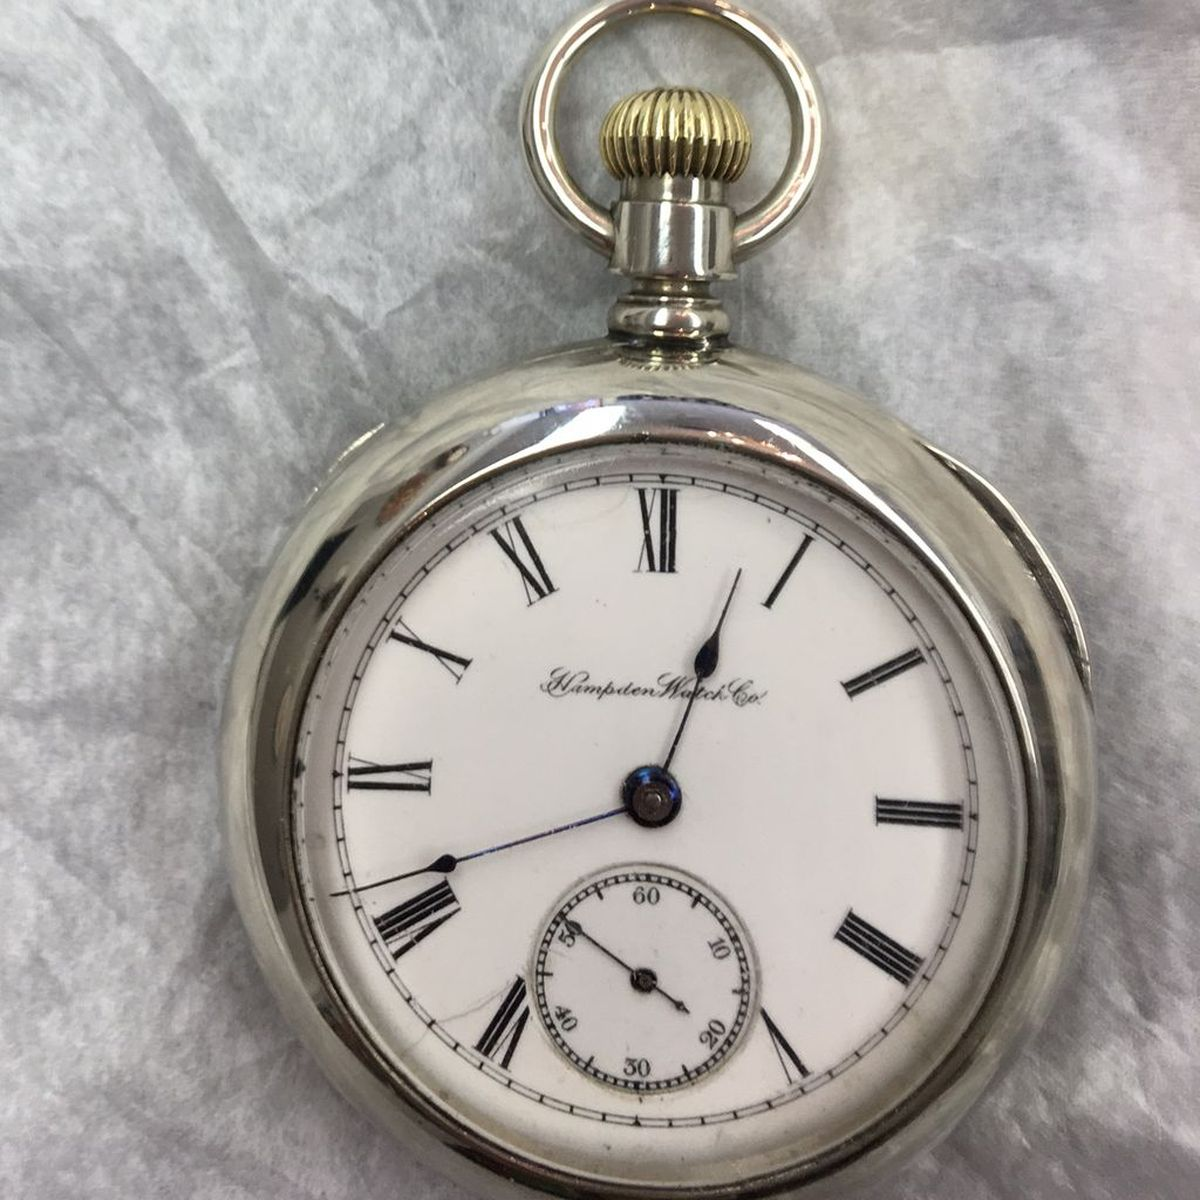 Antique Pocket Watch Repair and Service